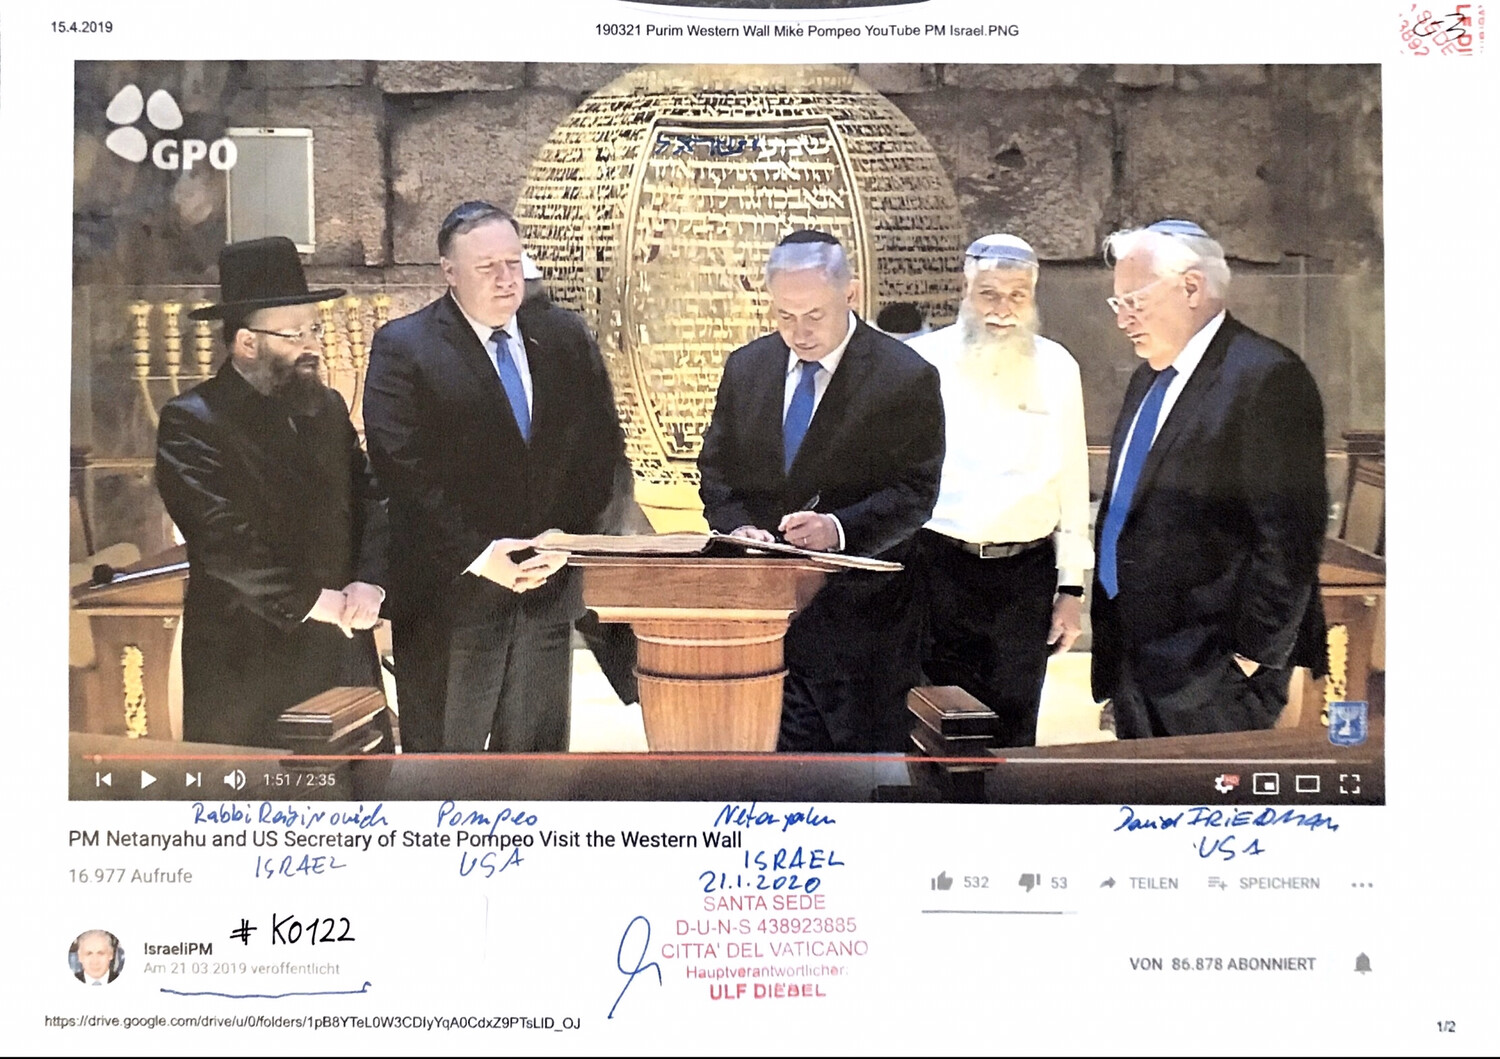 #K0122 l PM Netanyahu and US Secretary of State Pompeo Visit the Western Wall - 21l03l2019